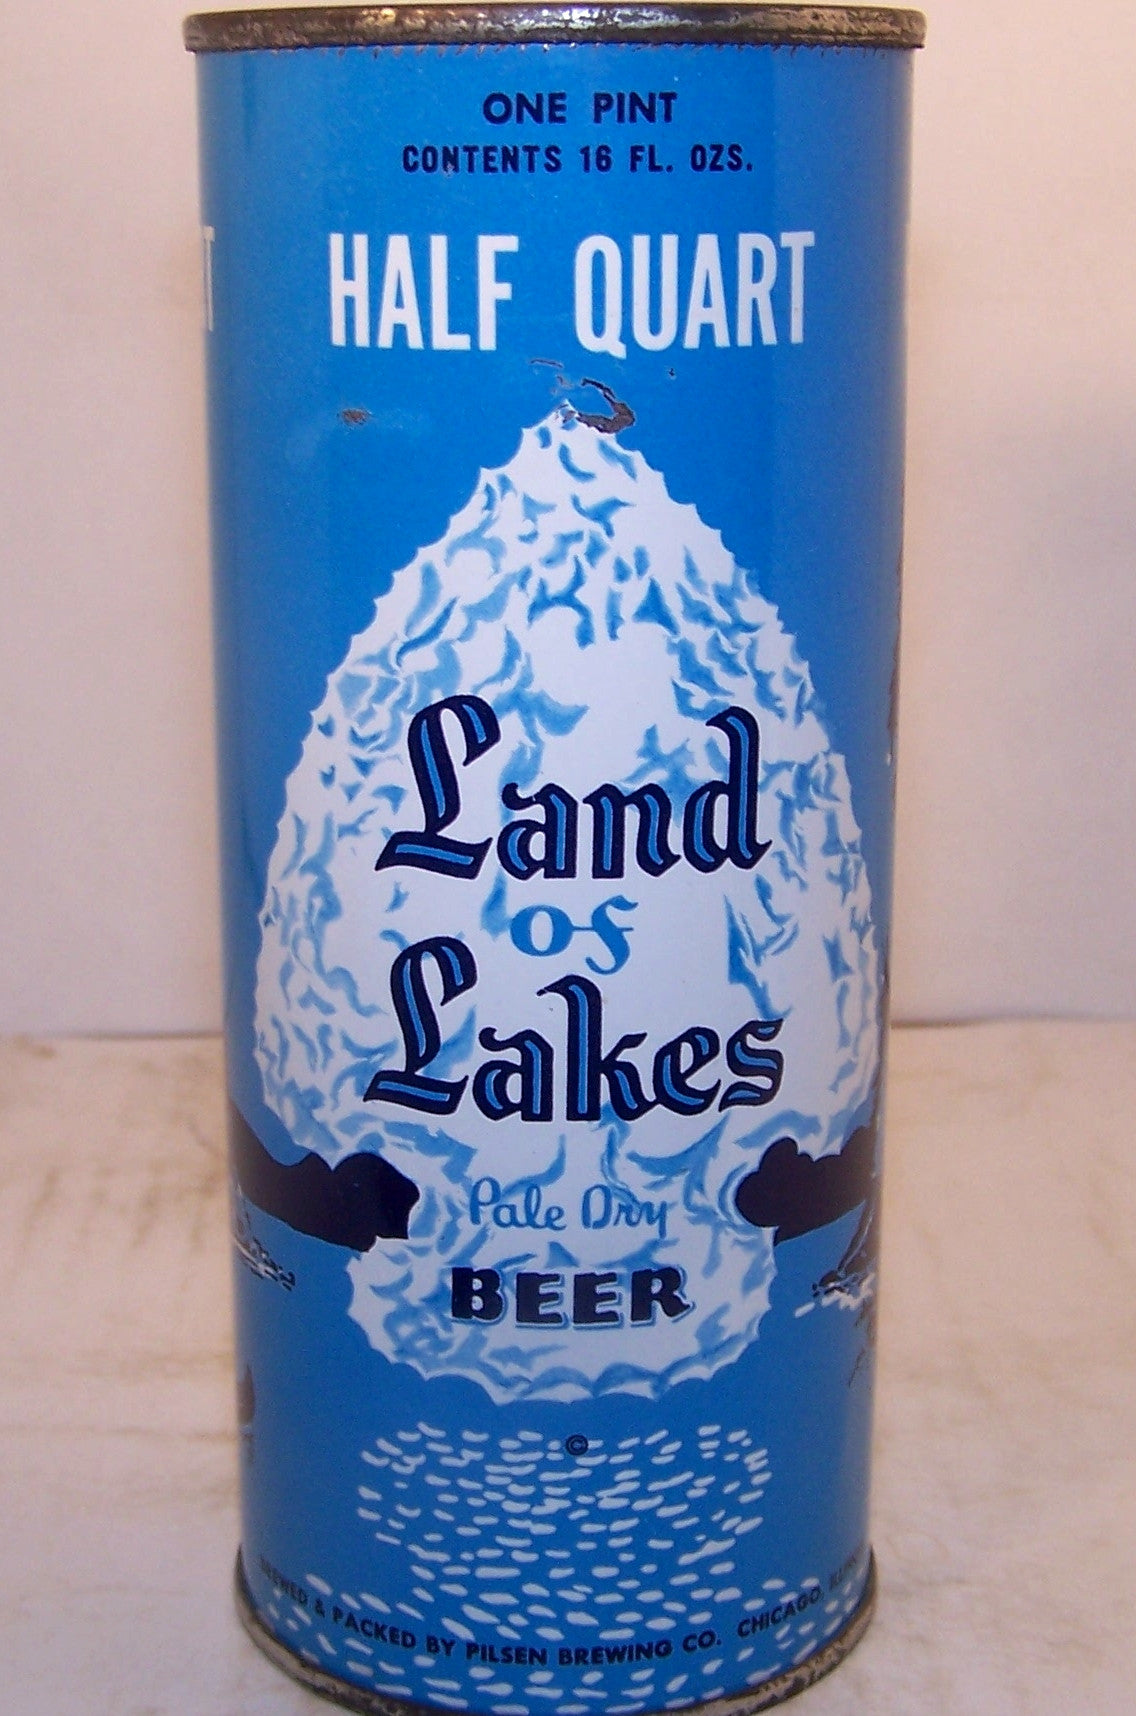 Land of Lakes pale dry beer, half quart, USBC 232-1 Grade 1/1- Sold on 2/28/15